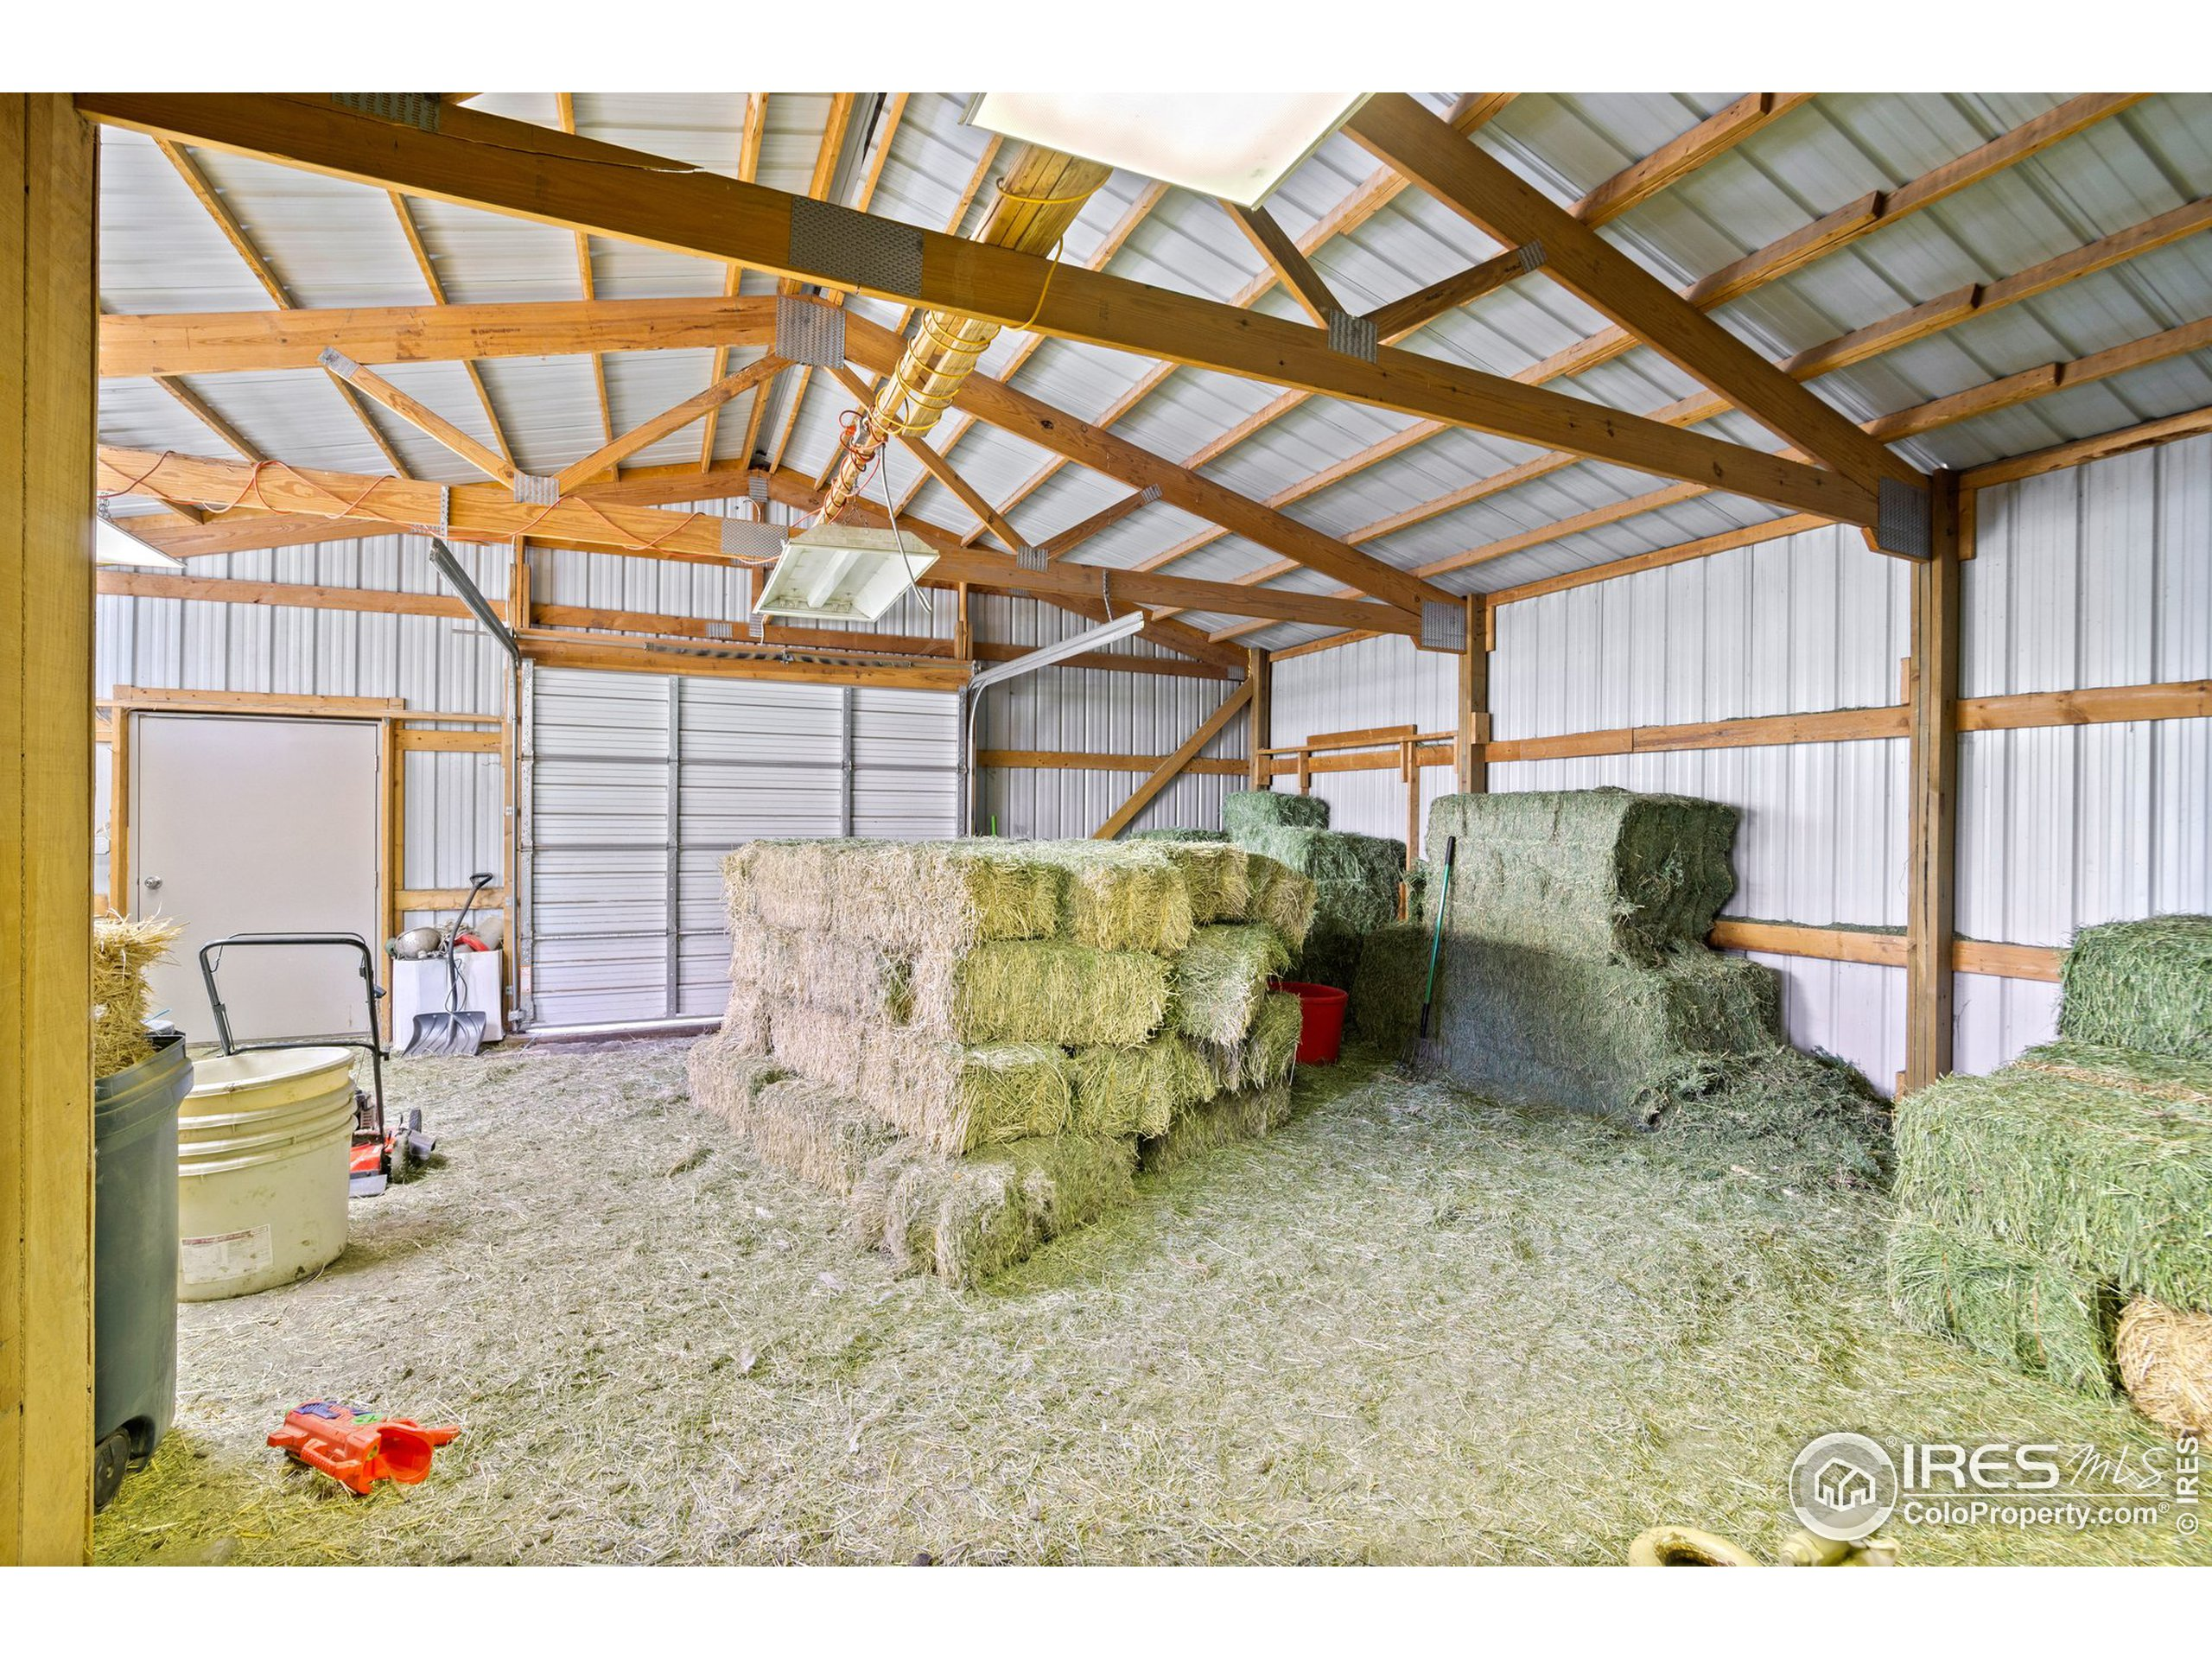 30 x 35 Hay Barn attached to the Tack Room / Exterior doors / Lean to for the chickens and fenced in Kennel